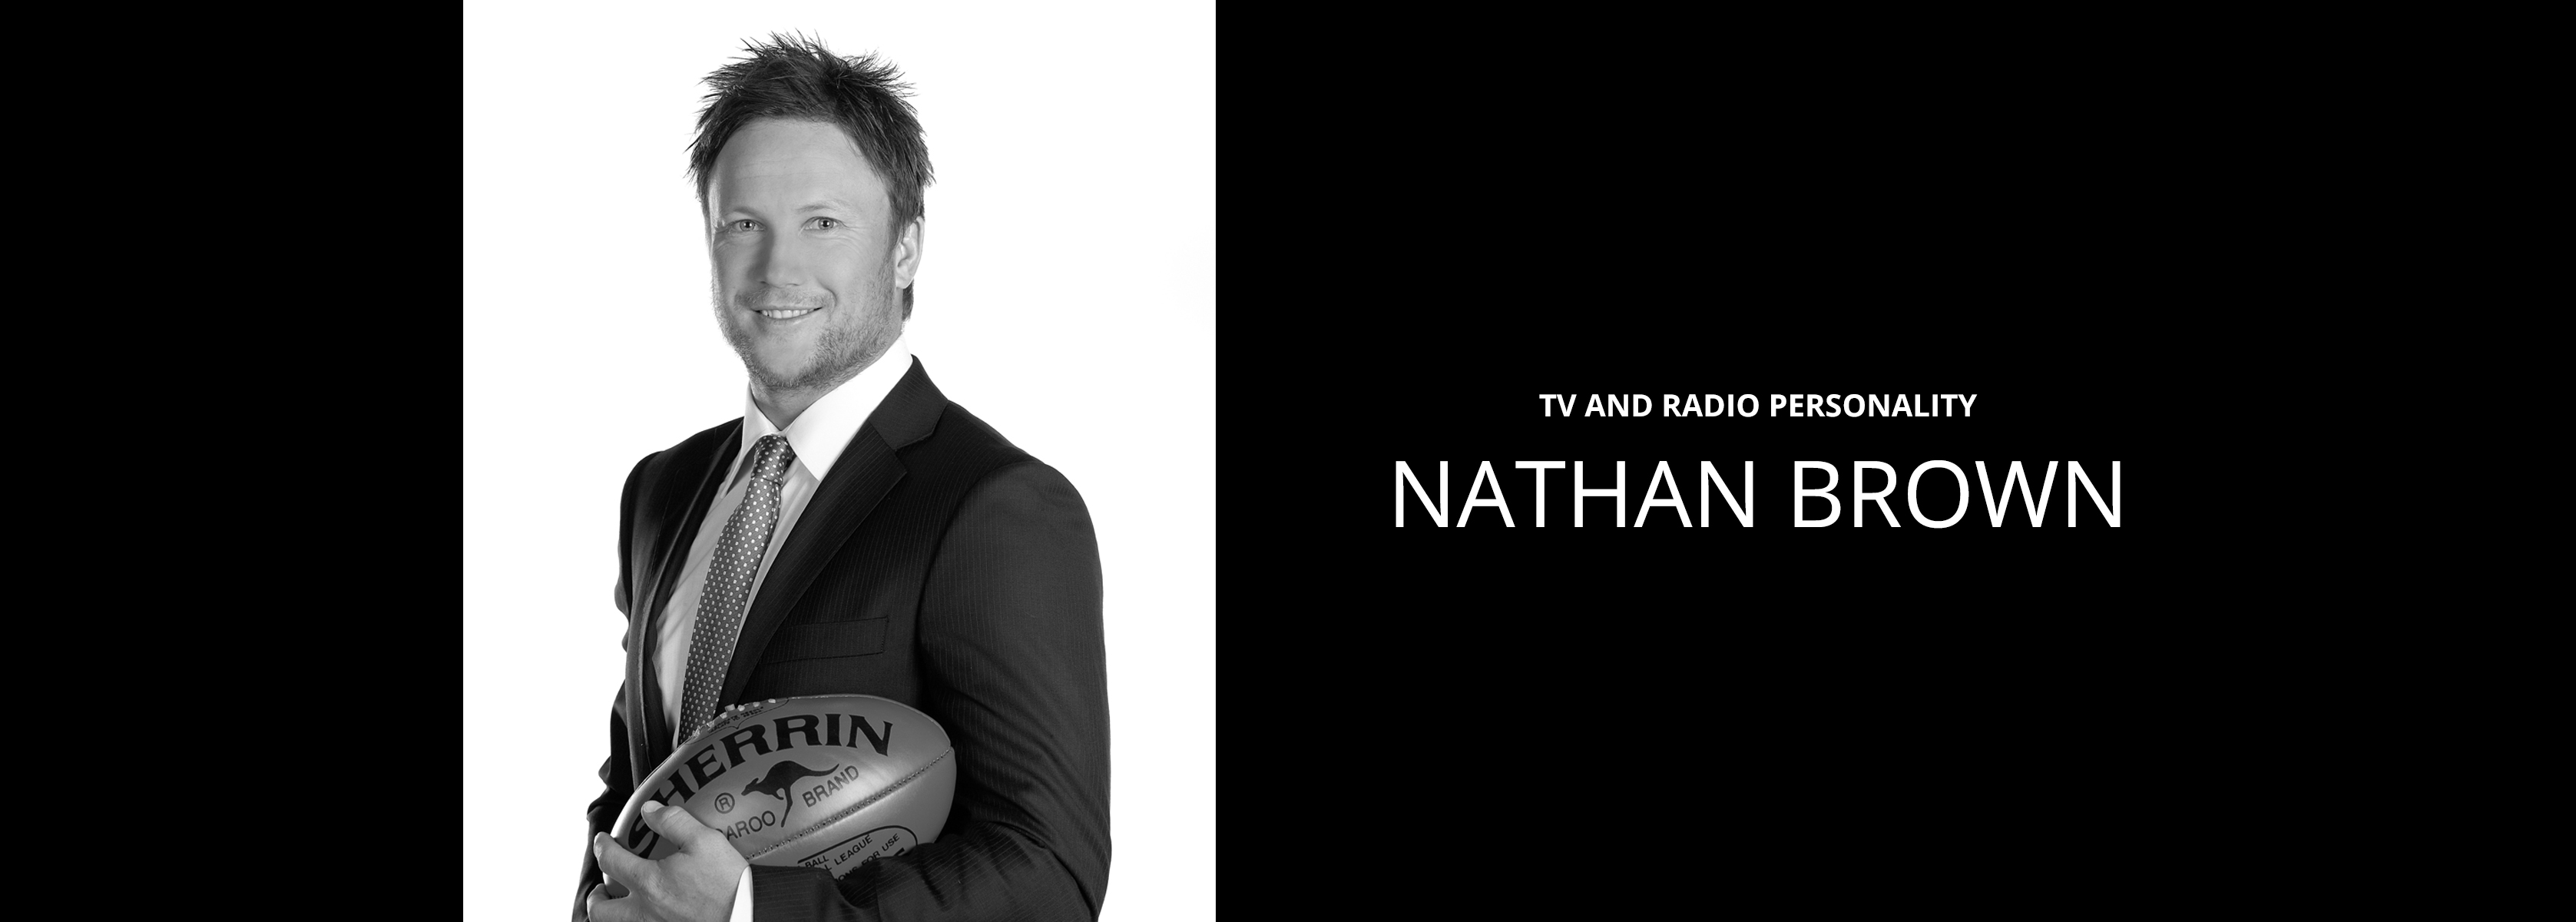 Nathan Brown - TV and Radio Personality - Bravo Talent Management